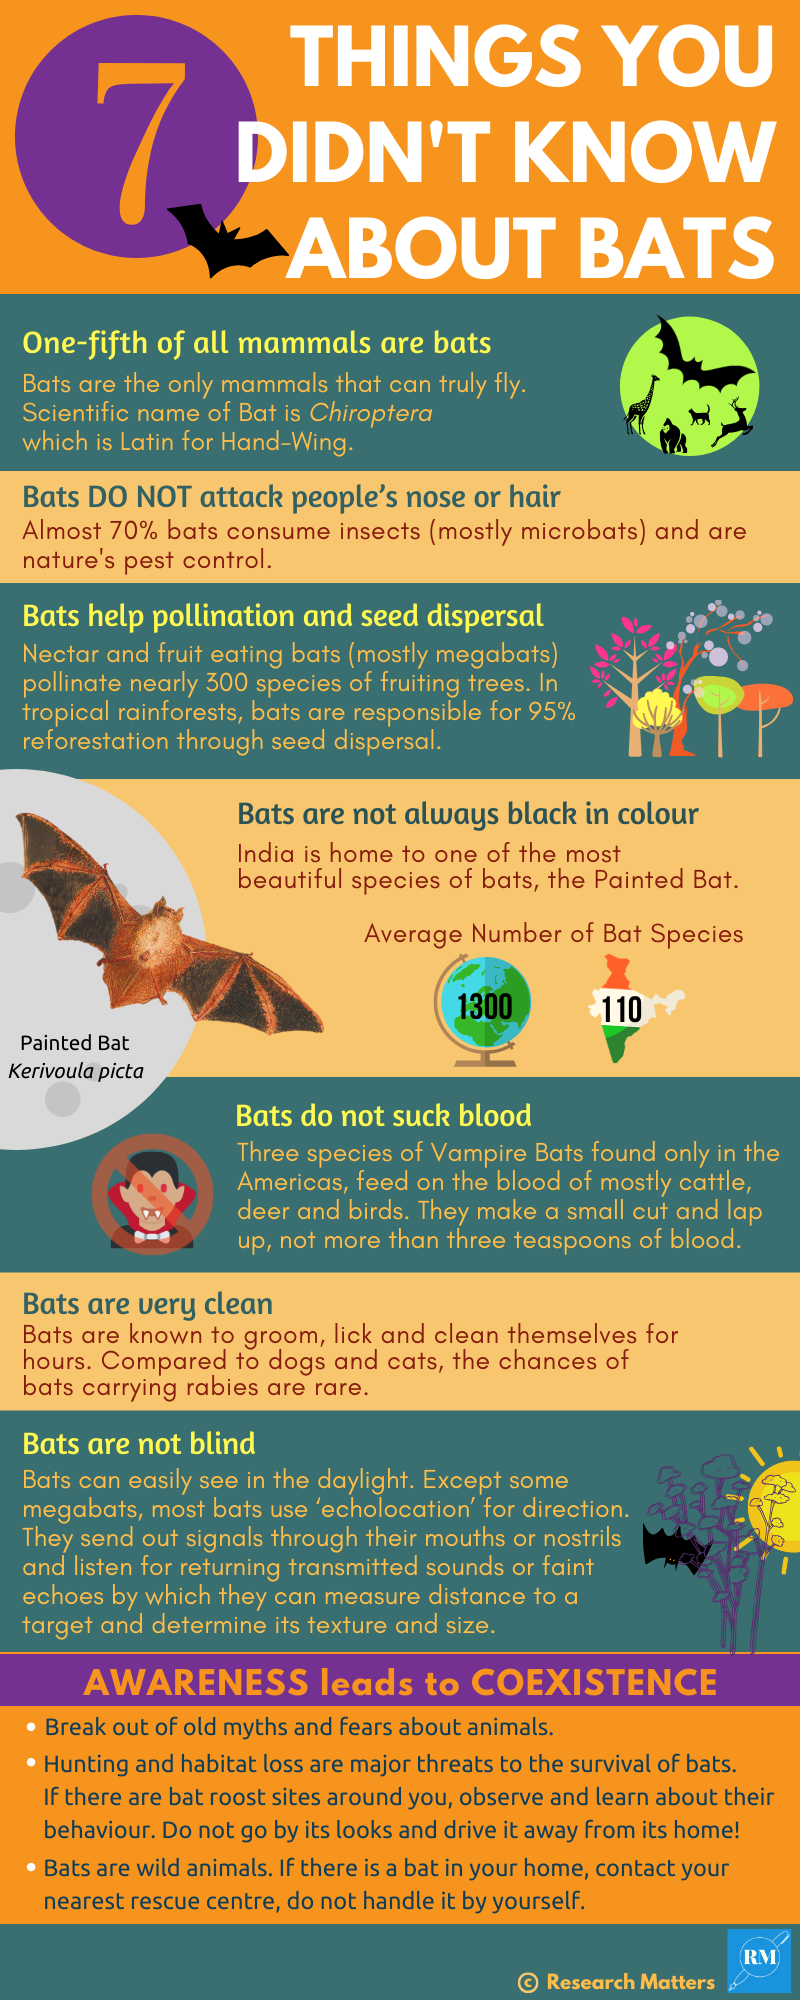 7 Amazing Things you didn't know about Bats